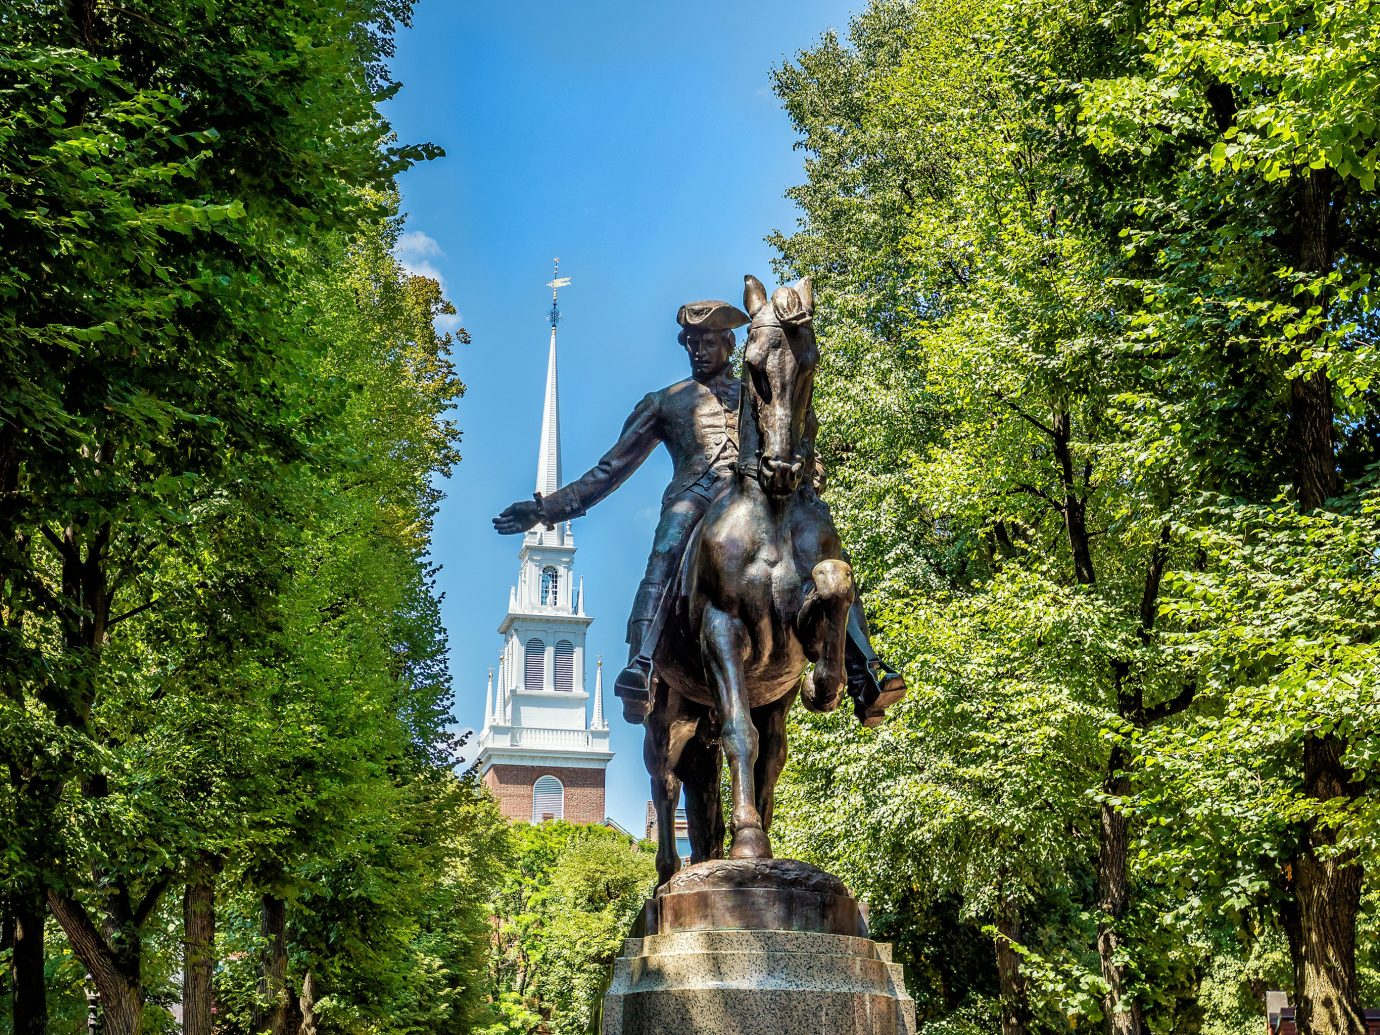 Statue of Paul Revere in Boston.